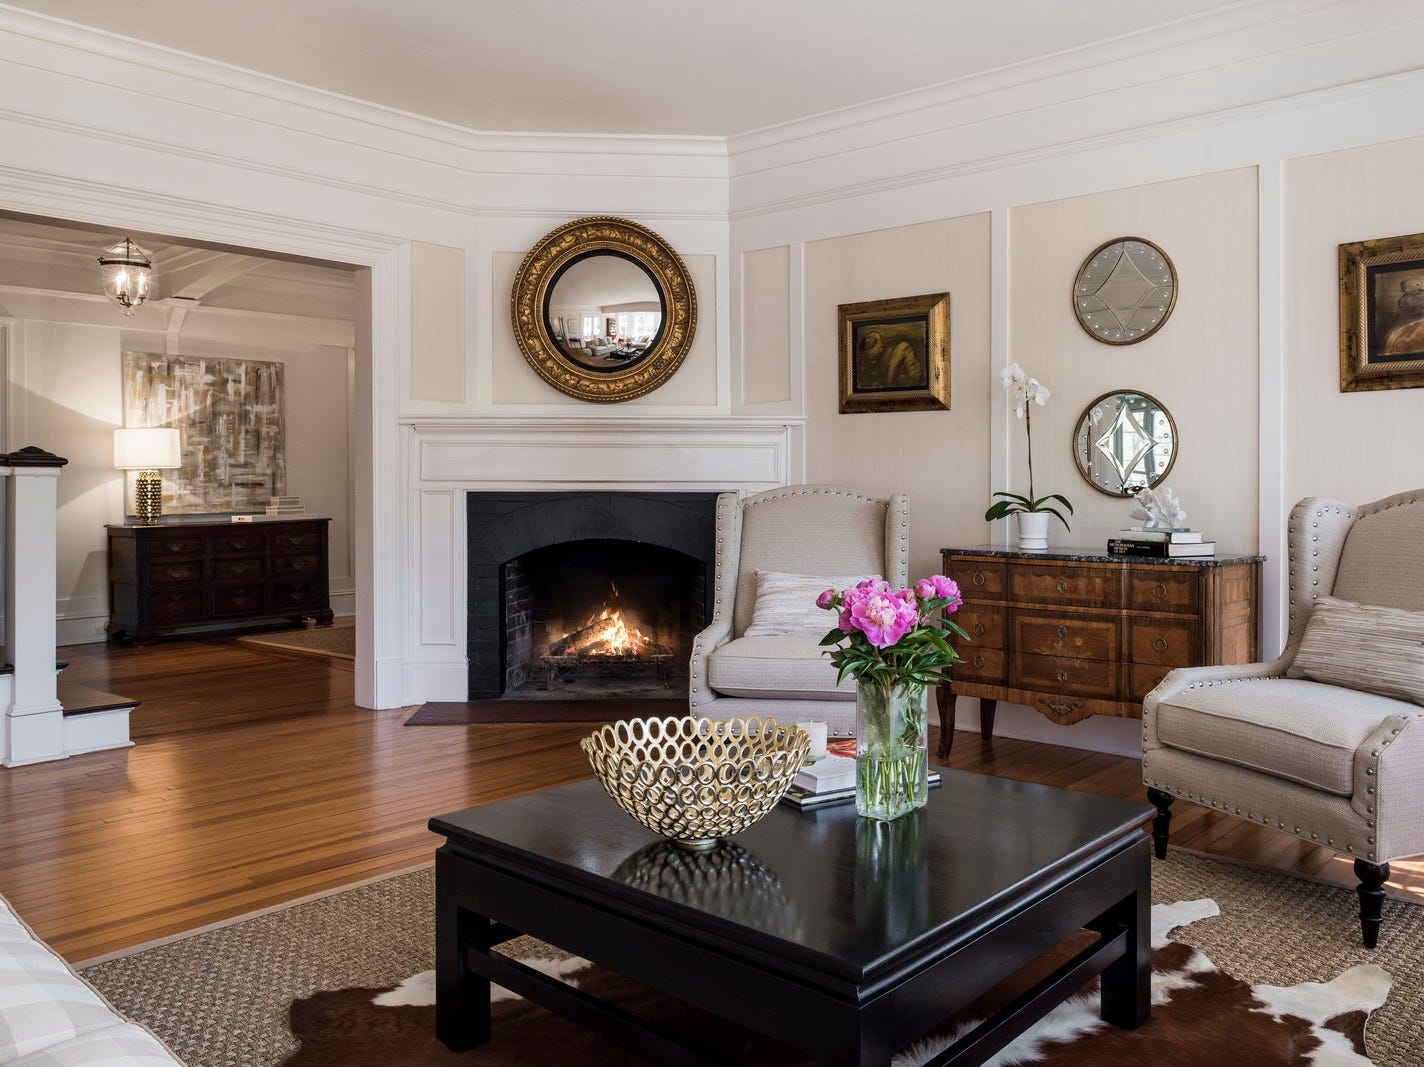 Famed aviation pioneer Ruth Rowalnd Nichols lived in this Rye home, now on the market. Built in 1880, the Shinolonial offers significant acreage for Rye at 3.3 acres and also includes a carriage house. The residence has had a modern renovation.